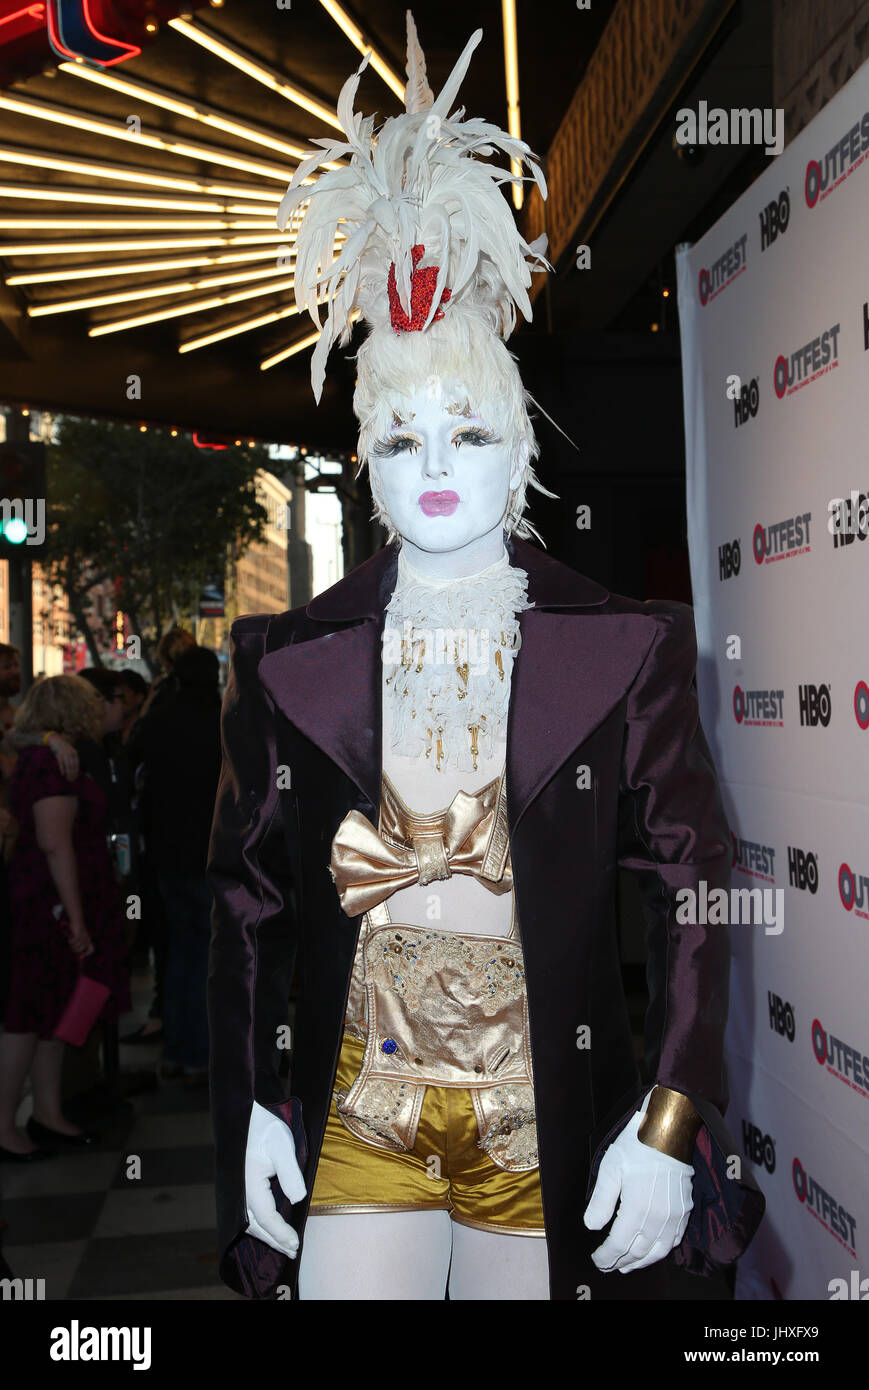 Los Angeles, California, USA. 16th July, 2017. Prince Poppycock, At 2017 Outfest Los Angeles LGBT Film Festival Stock Photo